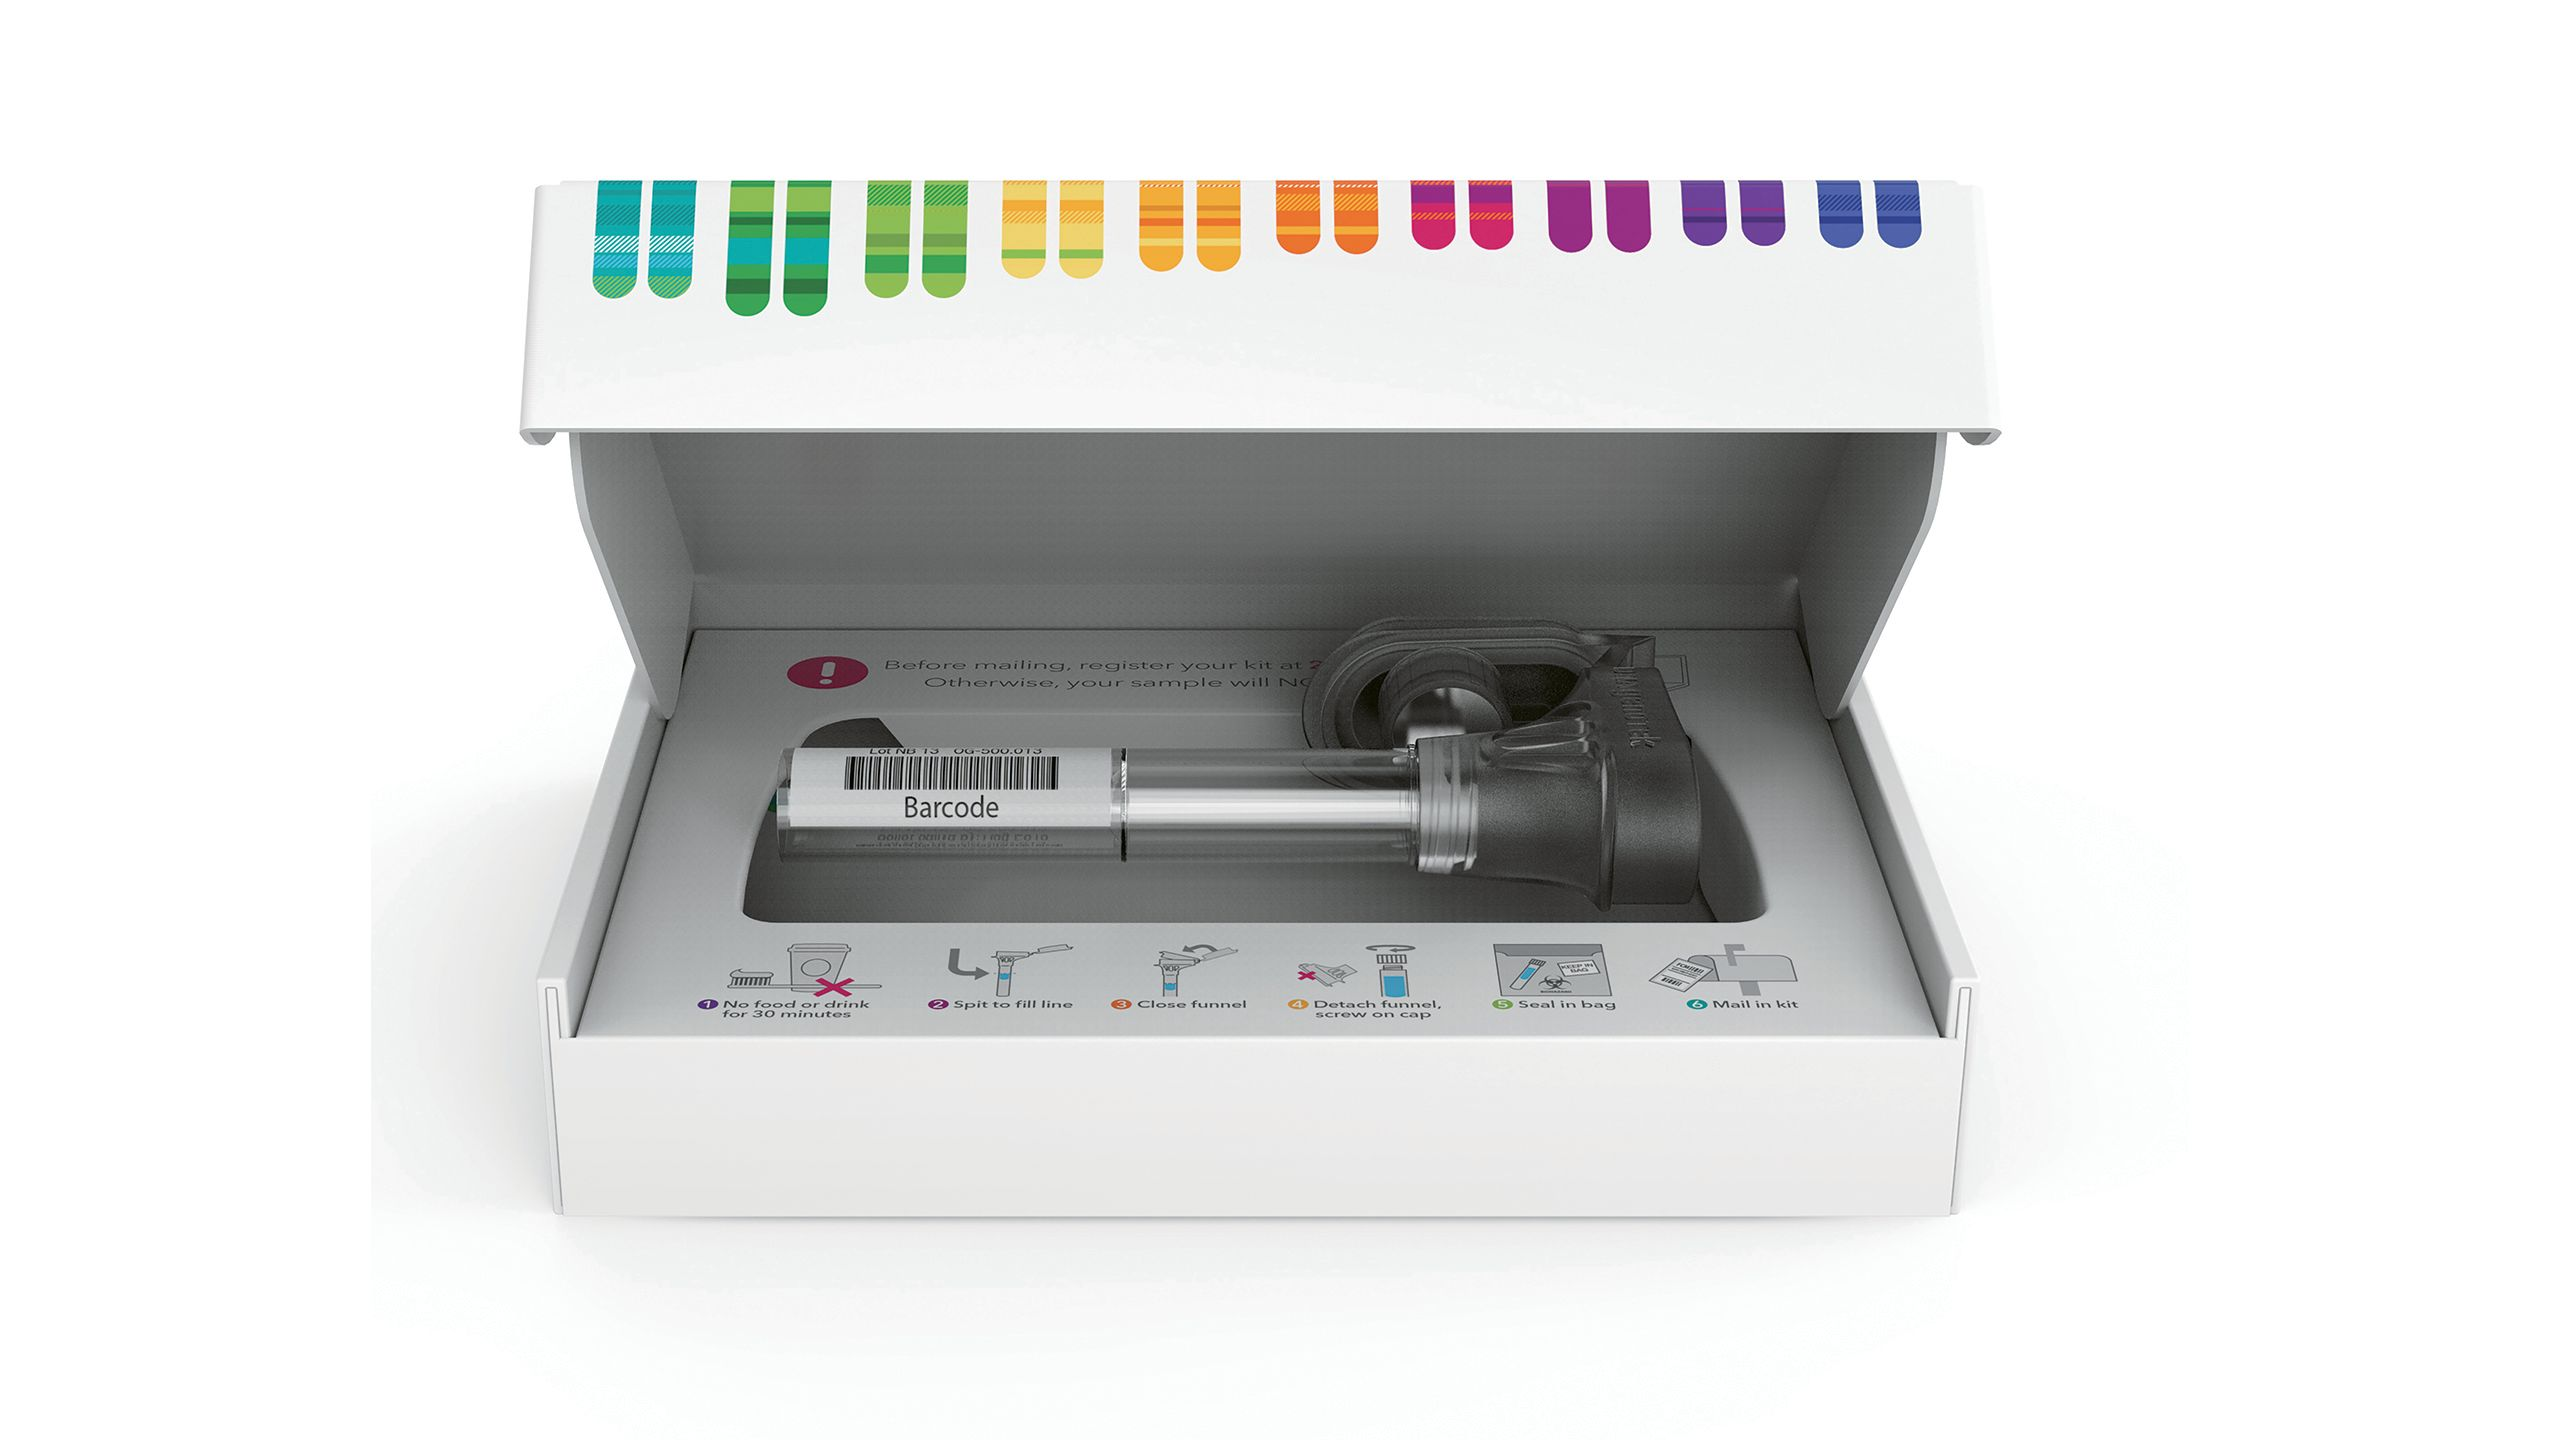 A DNA kit from 23andMe, which creates ancestry composition reports based on genetic similarities to 31 reference populations worldwide.